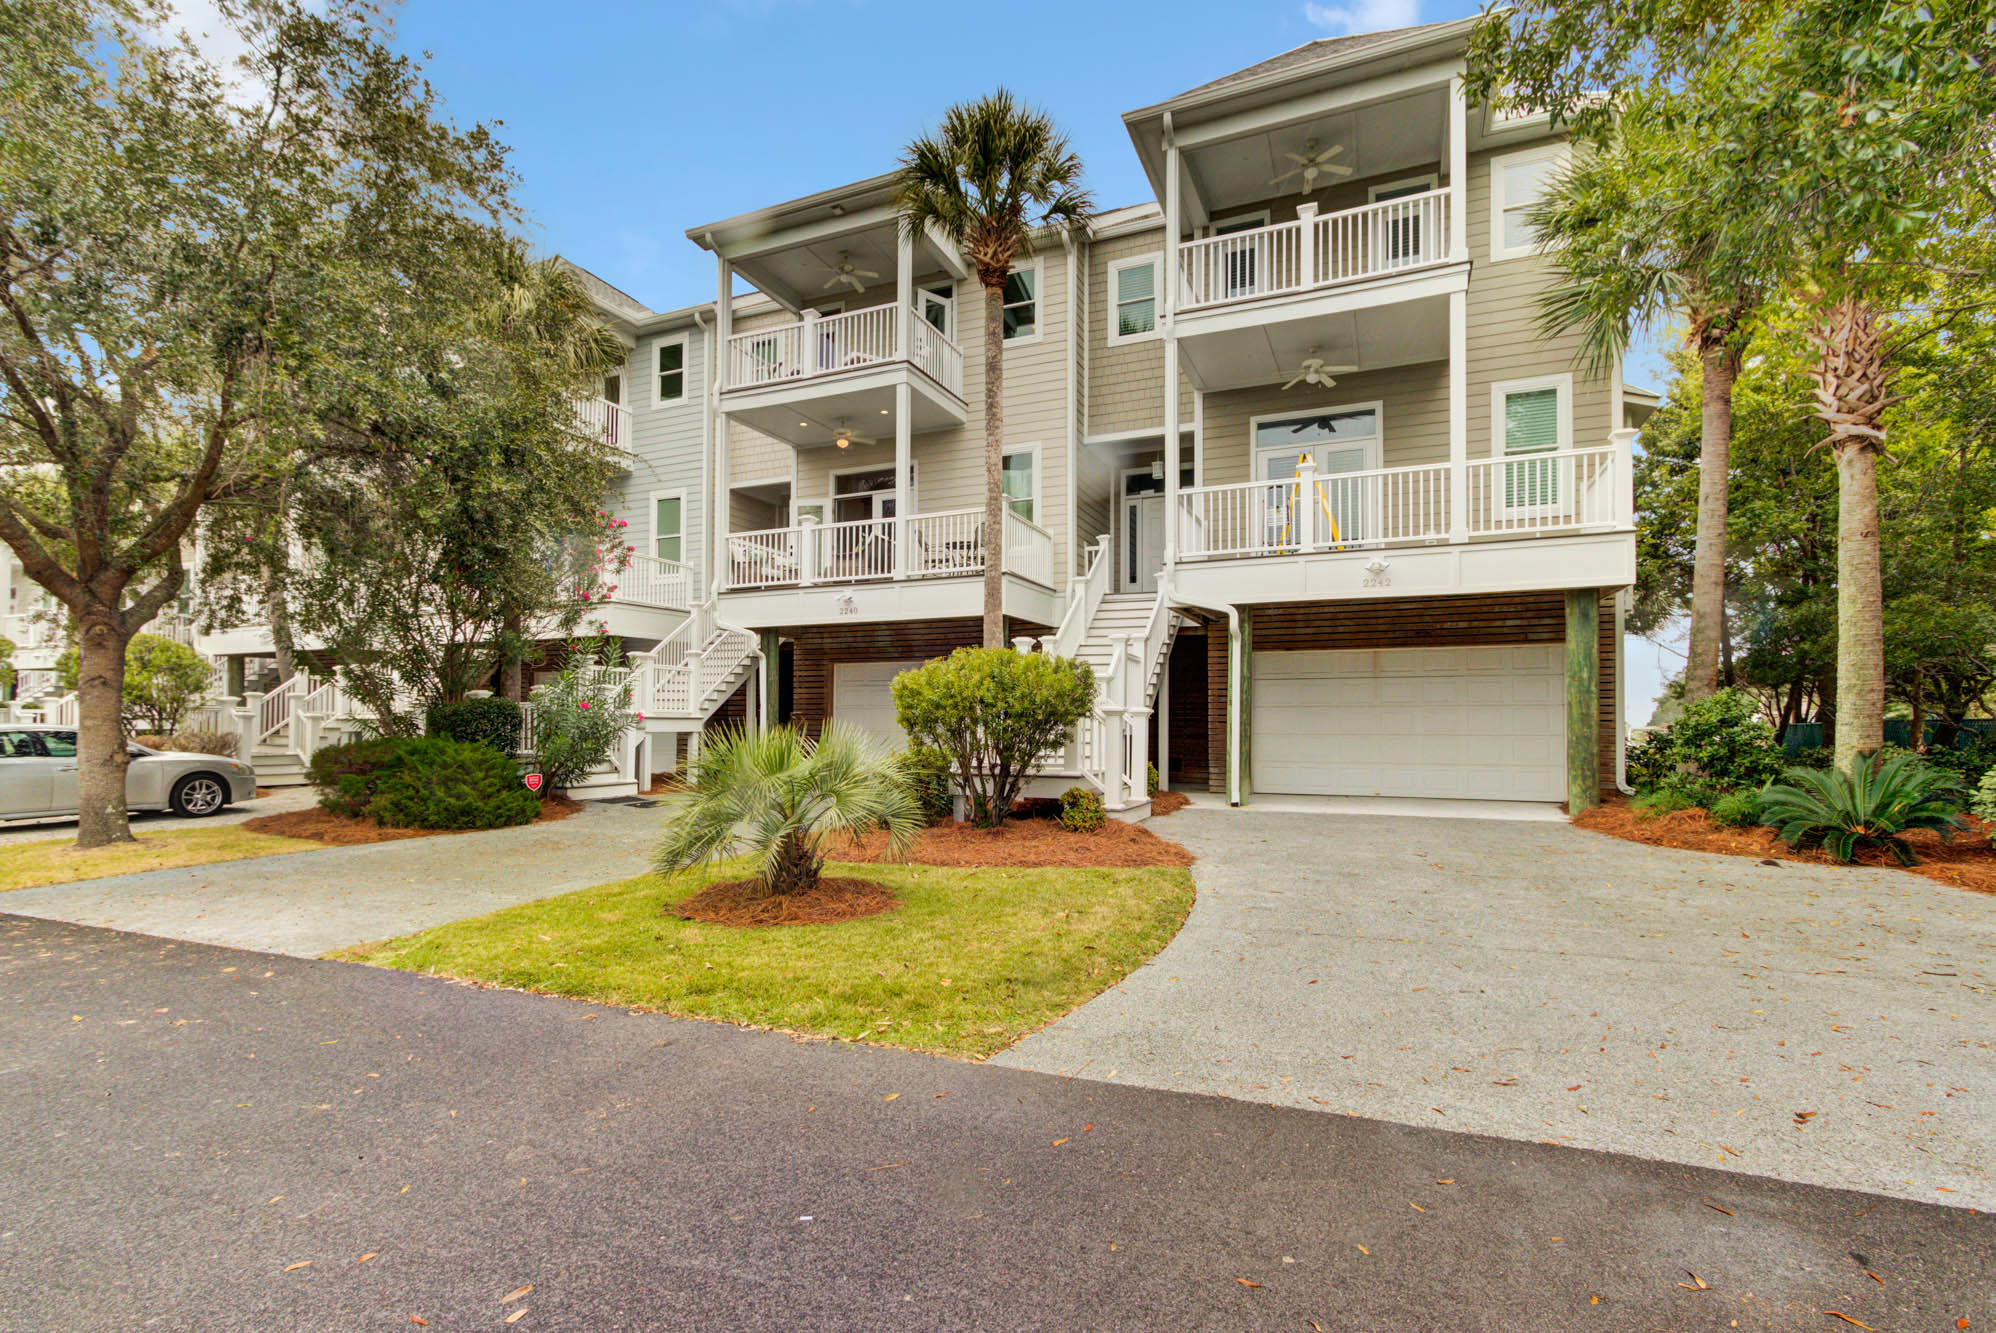 Folly Creek Place Homes For Sale - 2240 Folly, Folly Beach, SC - 39